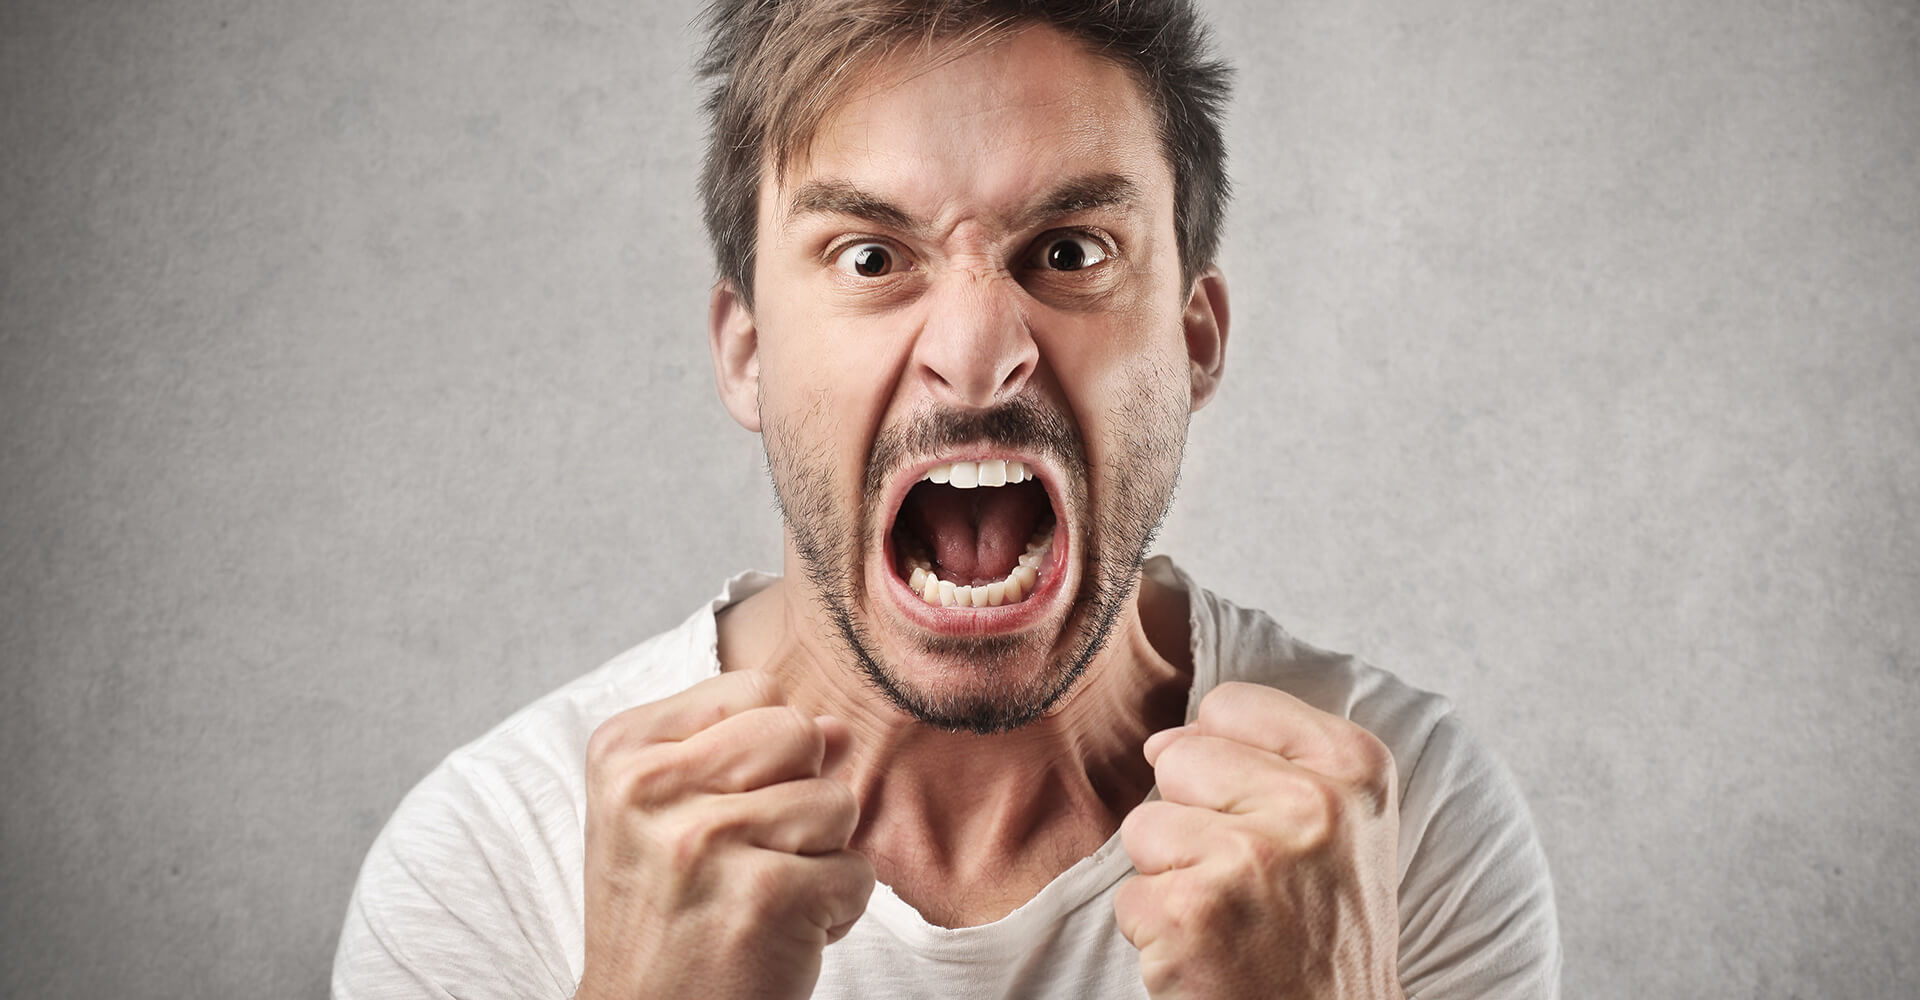 rebox rants main image of angry guy yelling